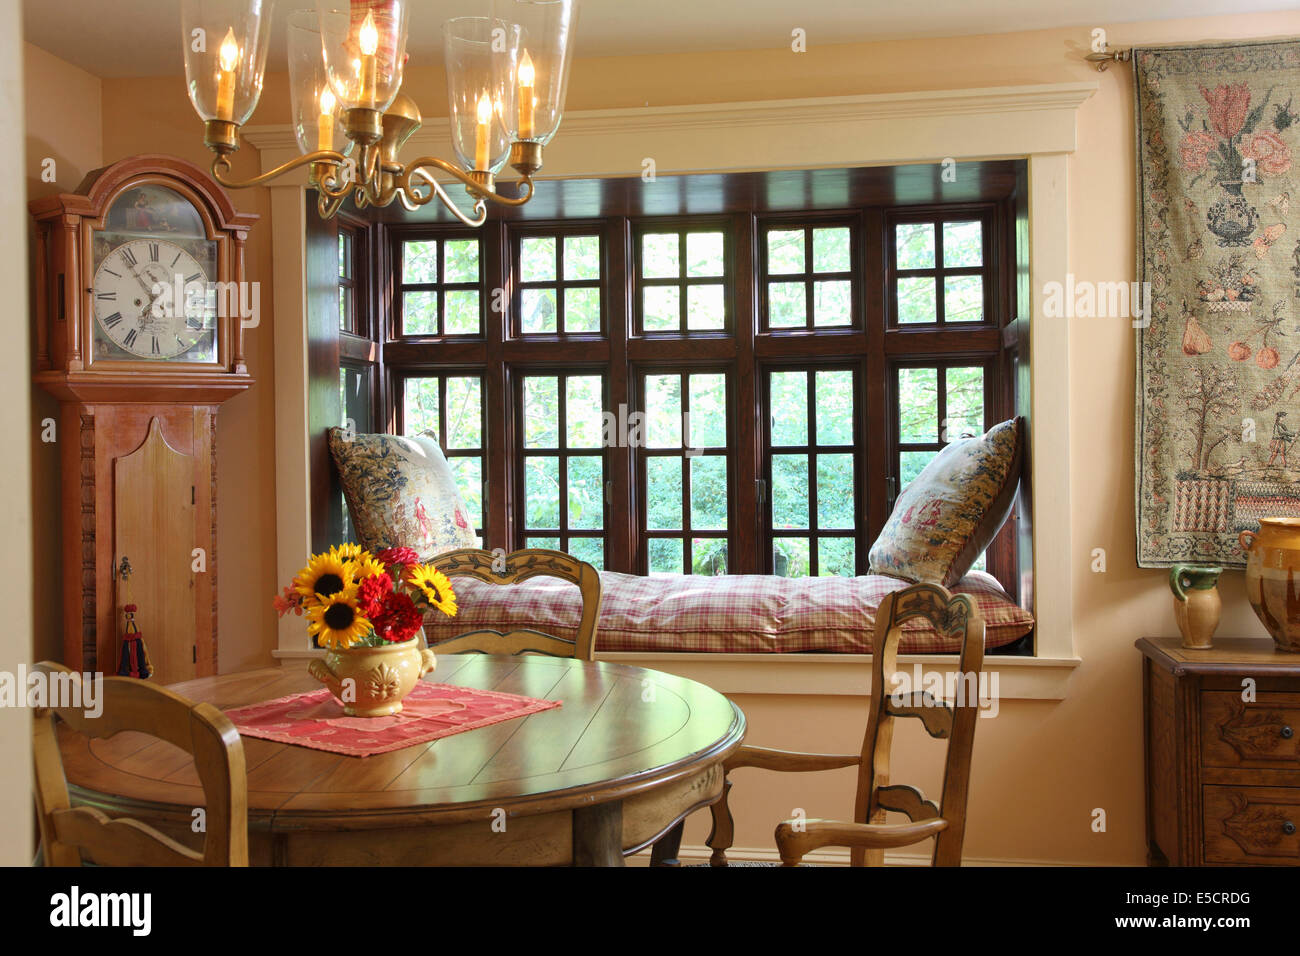 Cozy And Romantic Dining Room, With Window Seat And